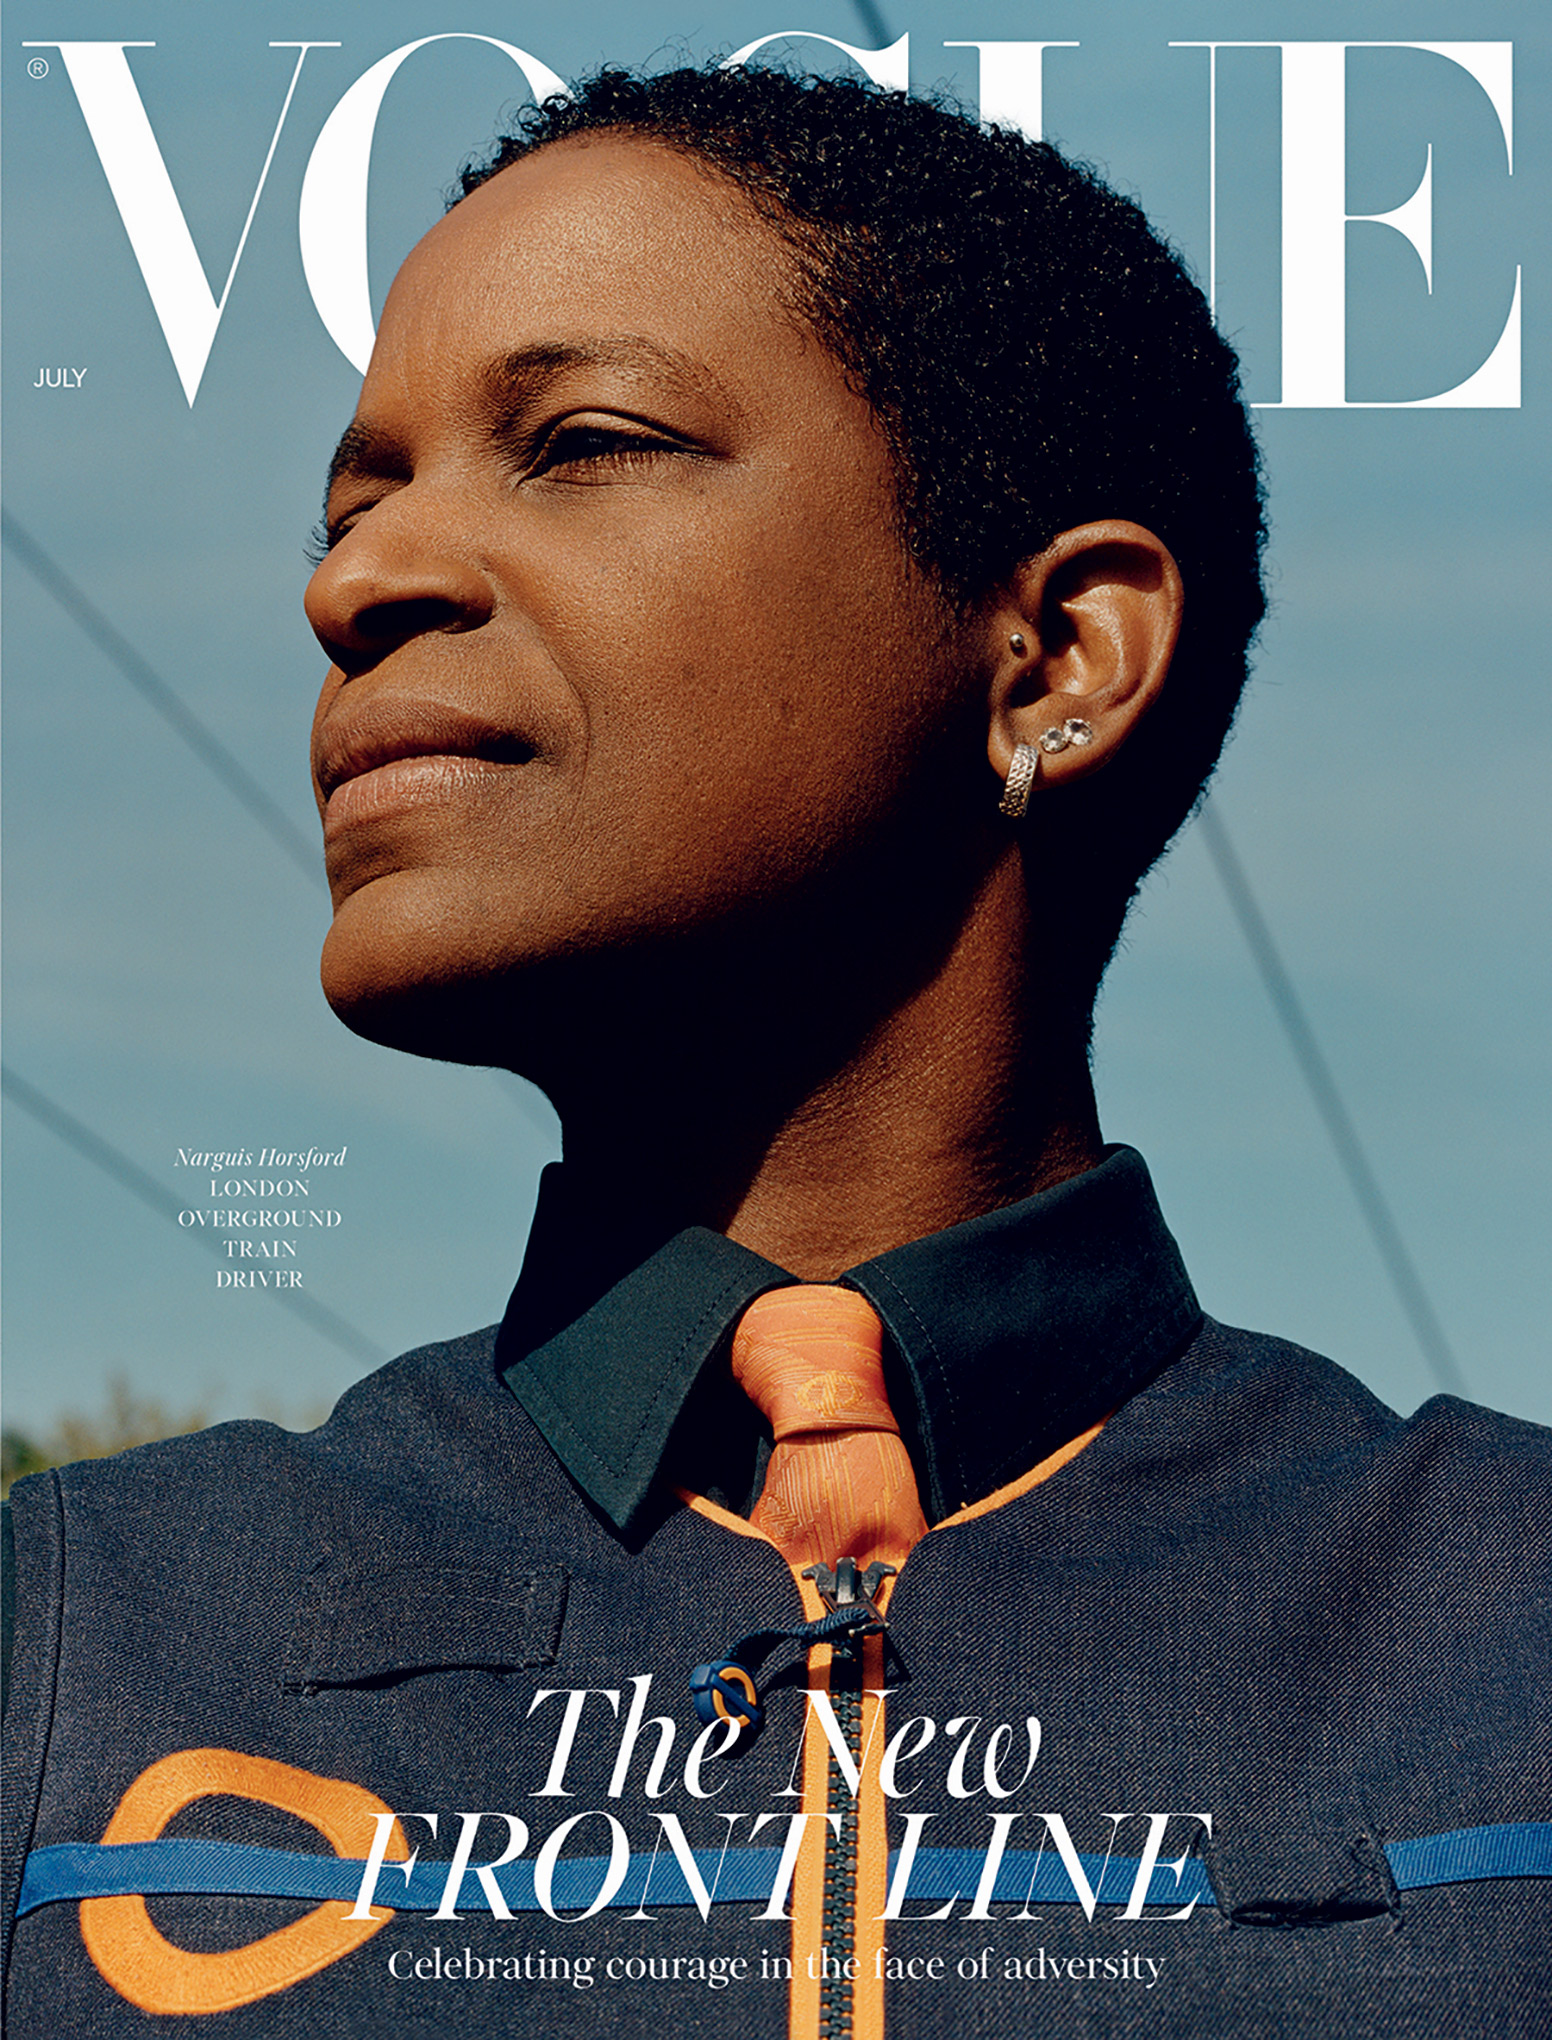 Train driver Narguis Horsford, on British Vogue's July 2020 issue.